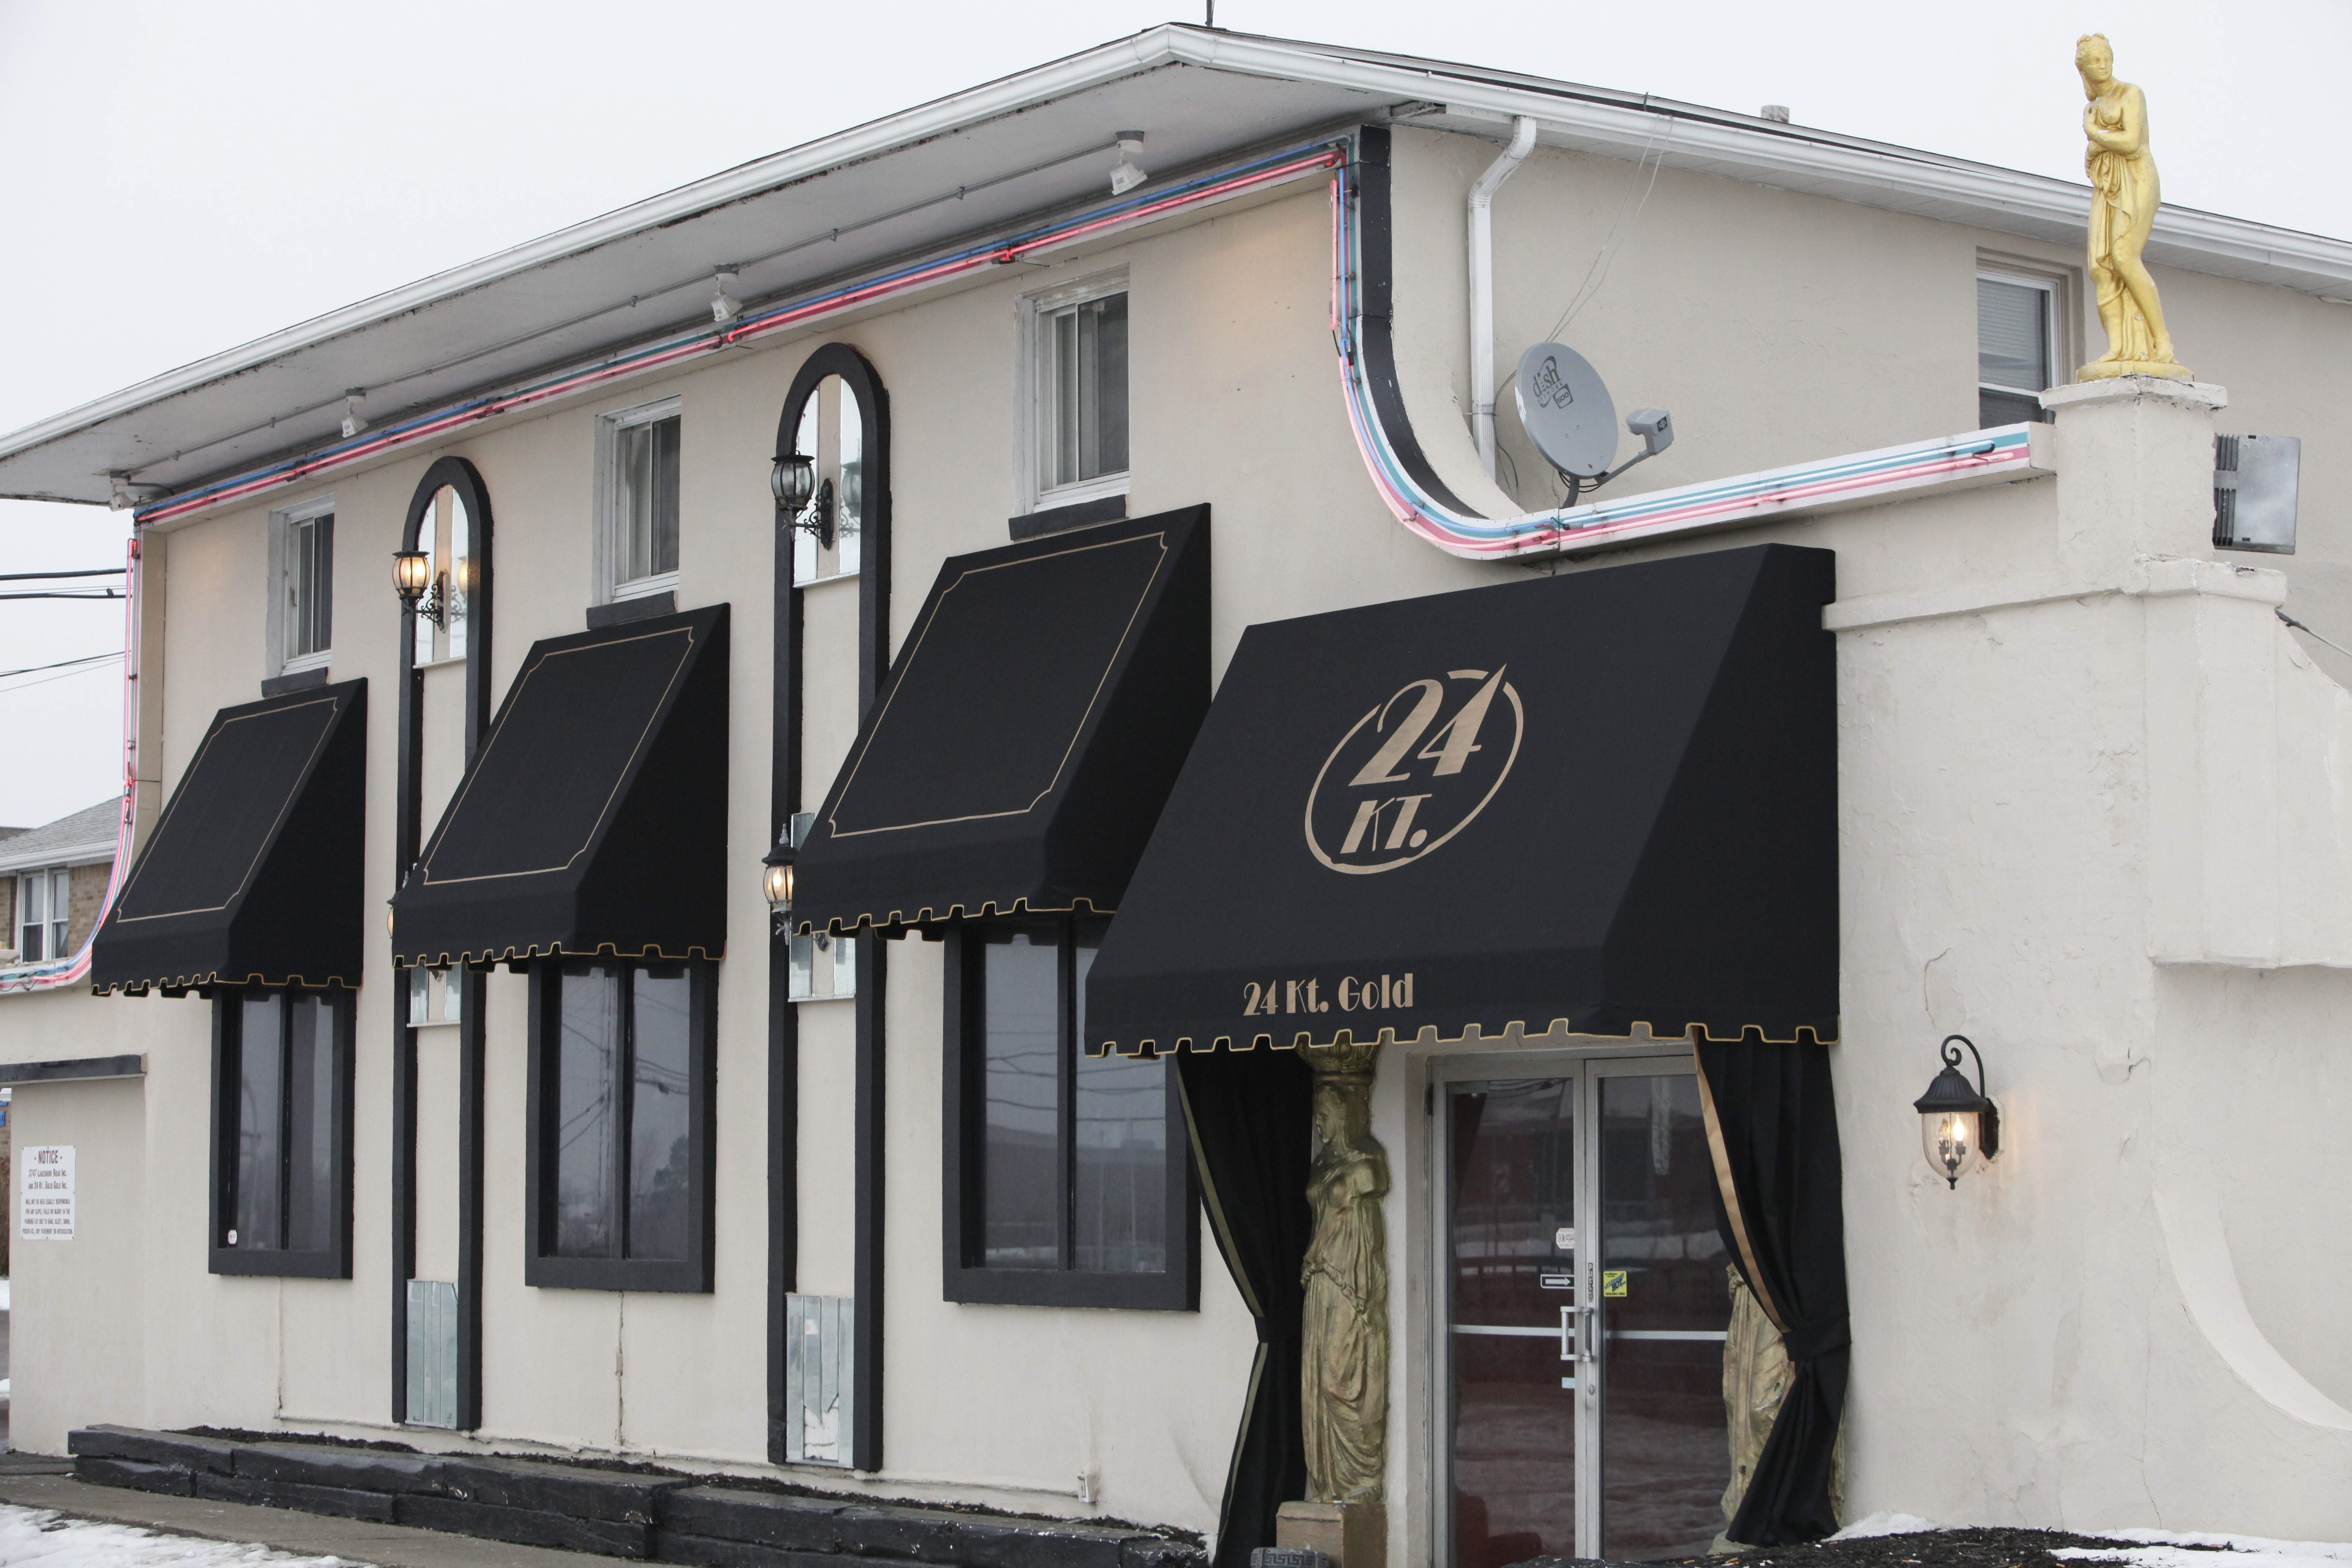 The Gold in Hamburg – formerly 24KT Gold, as seen in this News file photo – were padlocked closed Sunday morning. The landlords of that club and of Mademoiselle Gentlemen's Club in CHeektowaga said the club owners had not paid their rent in full in several years. (Derek Gee/News file photo)